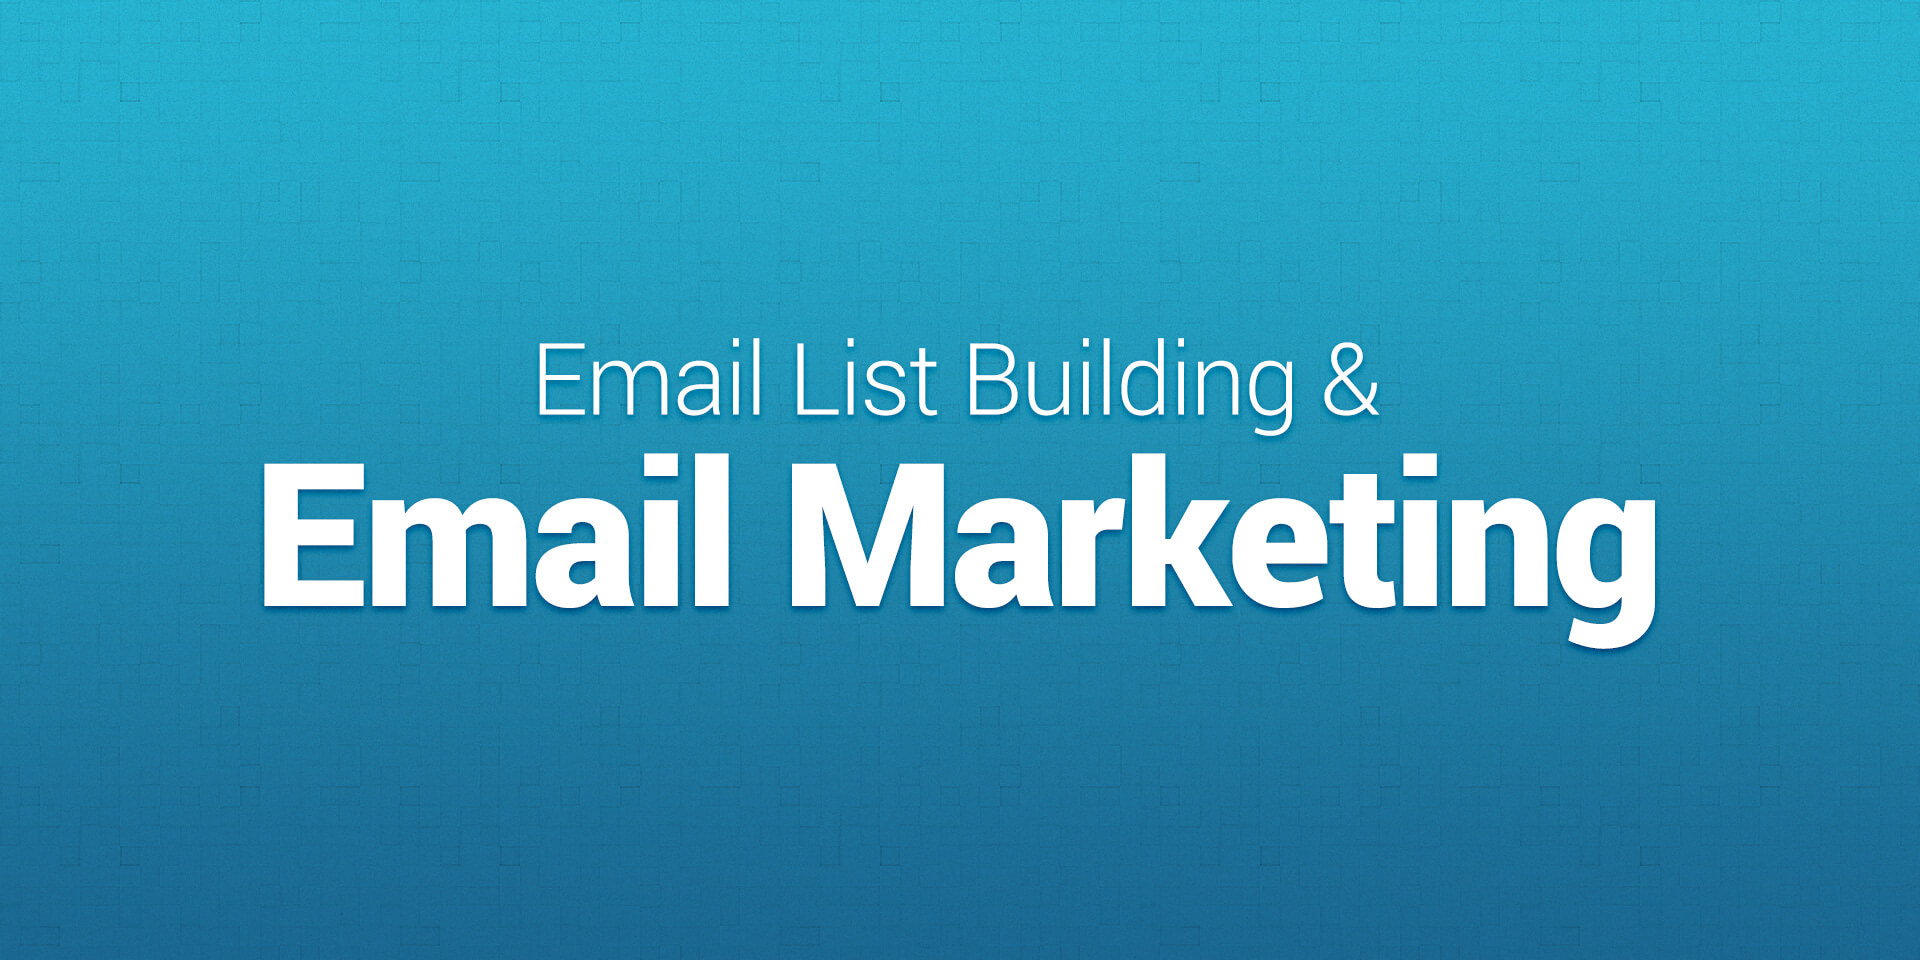 Email list building and email marketing